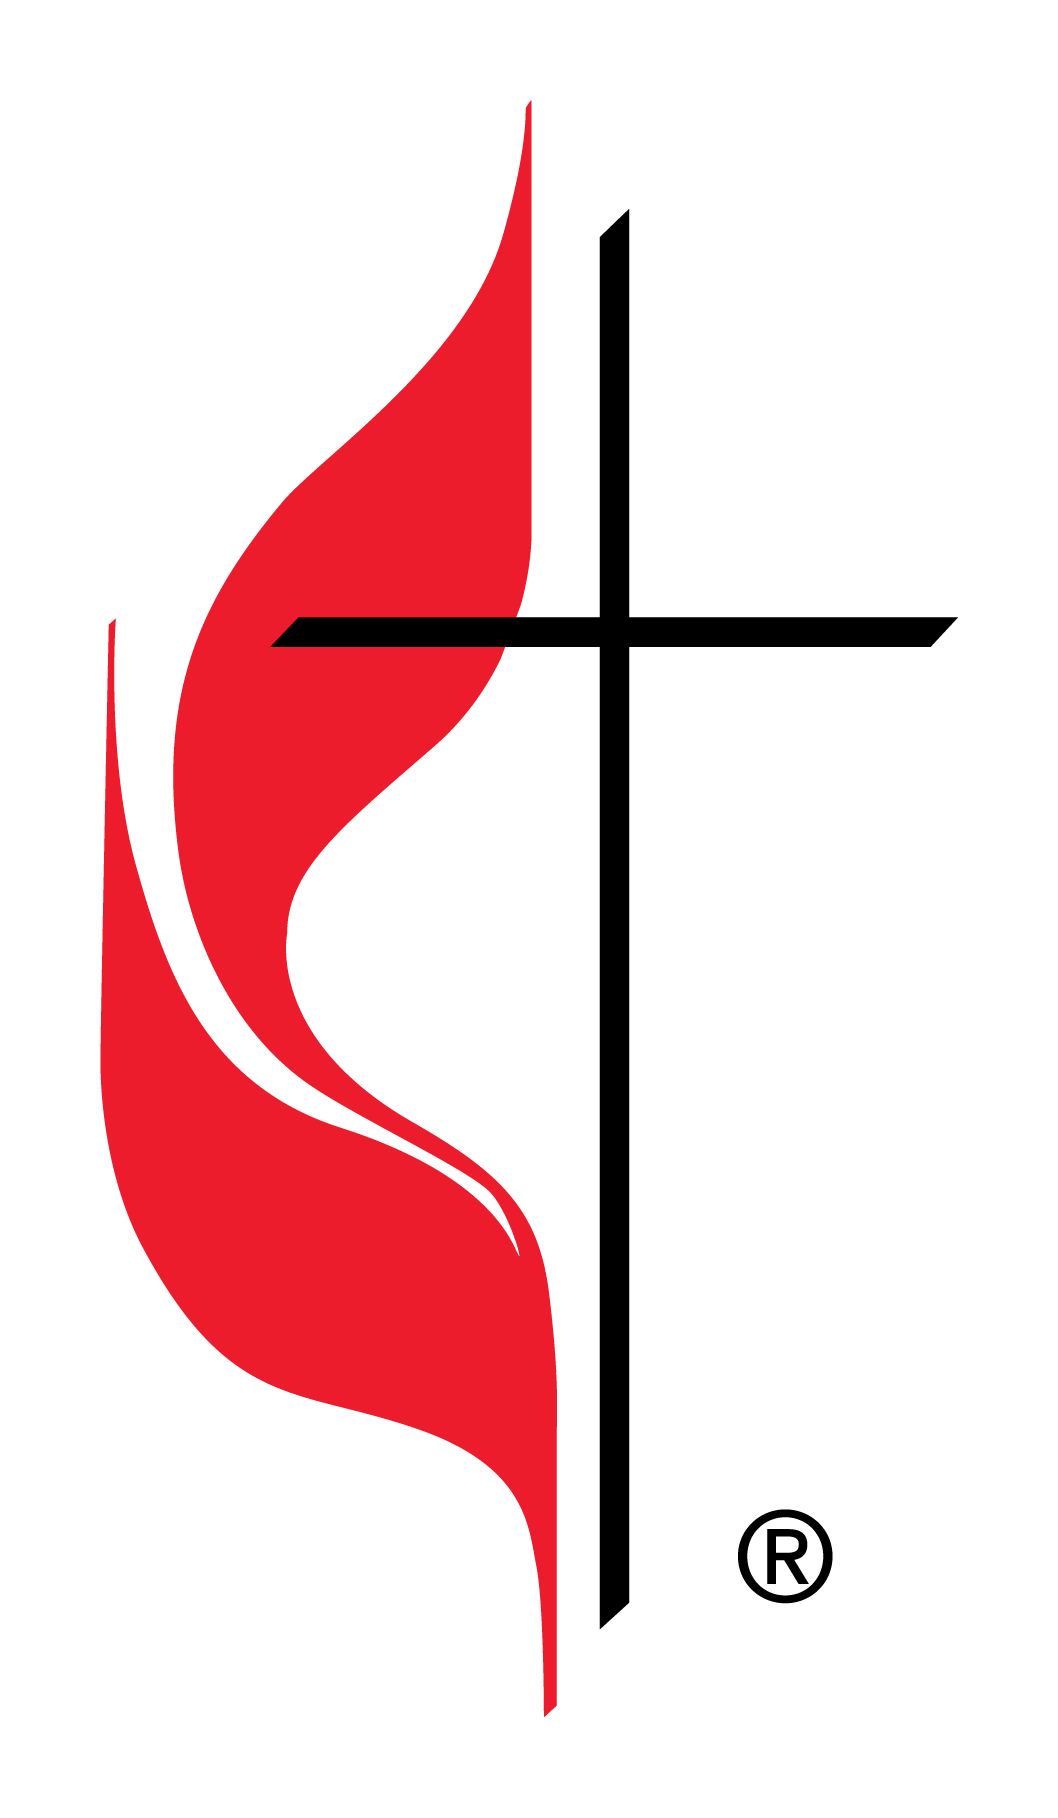 Painted cross clipart clipart library stock Official Cross and Flame Logo of The United Methodist Church ... clipart library stock